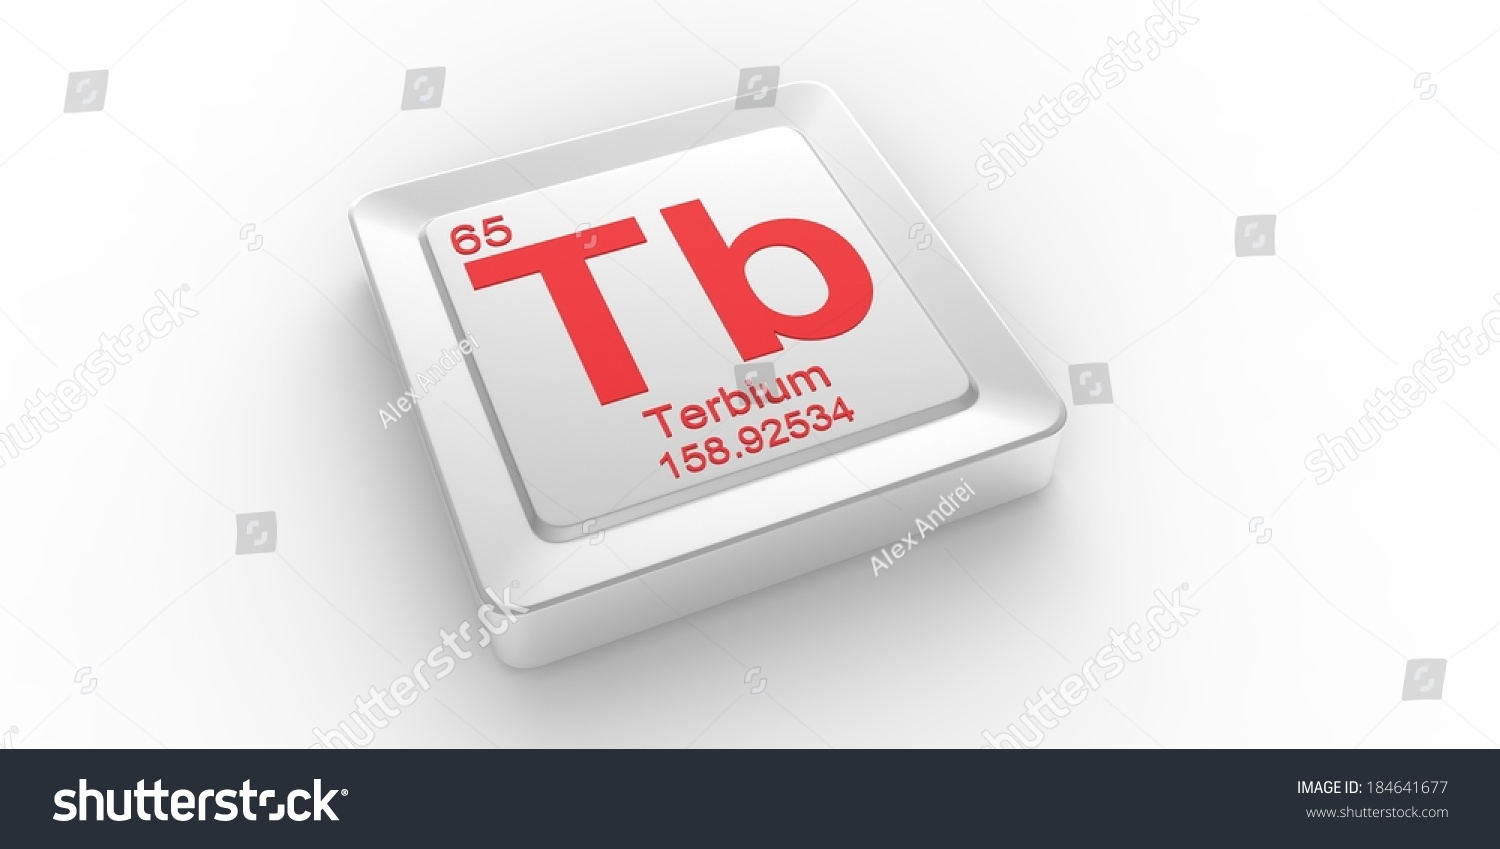 Periodic table tb choice image periodic table images tb periodic table image collections periodic table images tb symbol 65 material terbium chemical stock illustration gamestrikefo Image collections